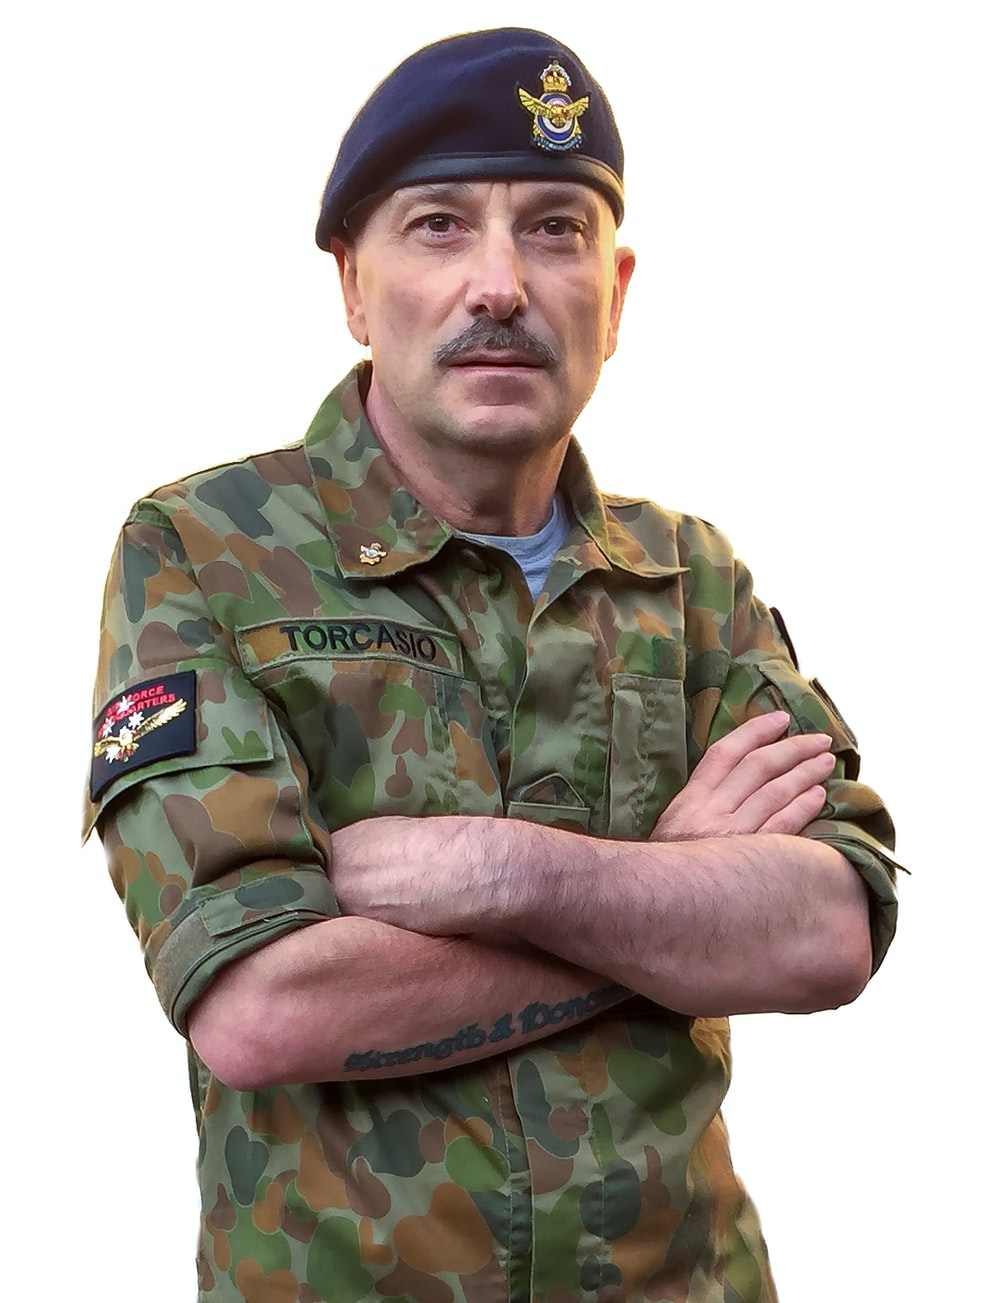 man in green camouflage army uniform